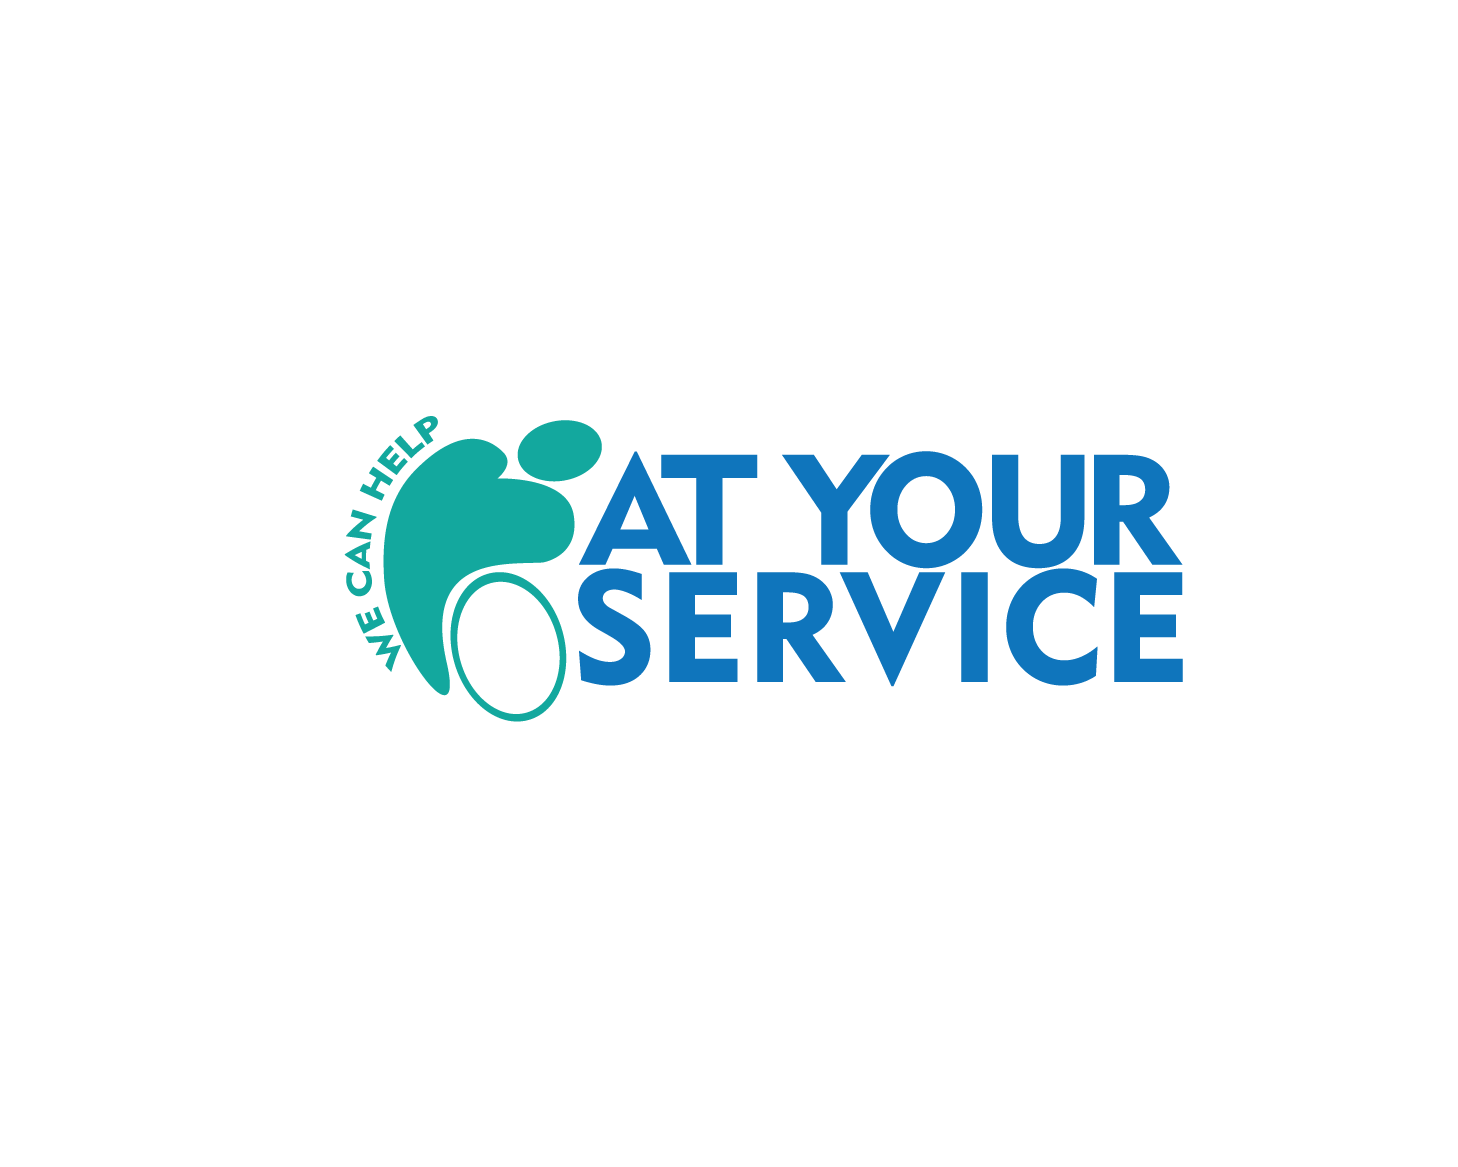 Logo Design by Roy Ferre - Entry No. 102 in the Logo Design Contest Care To Go Services.